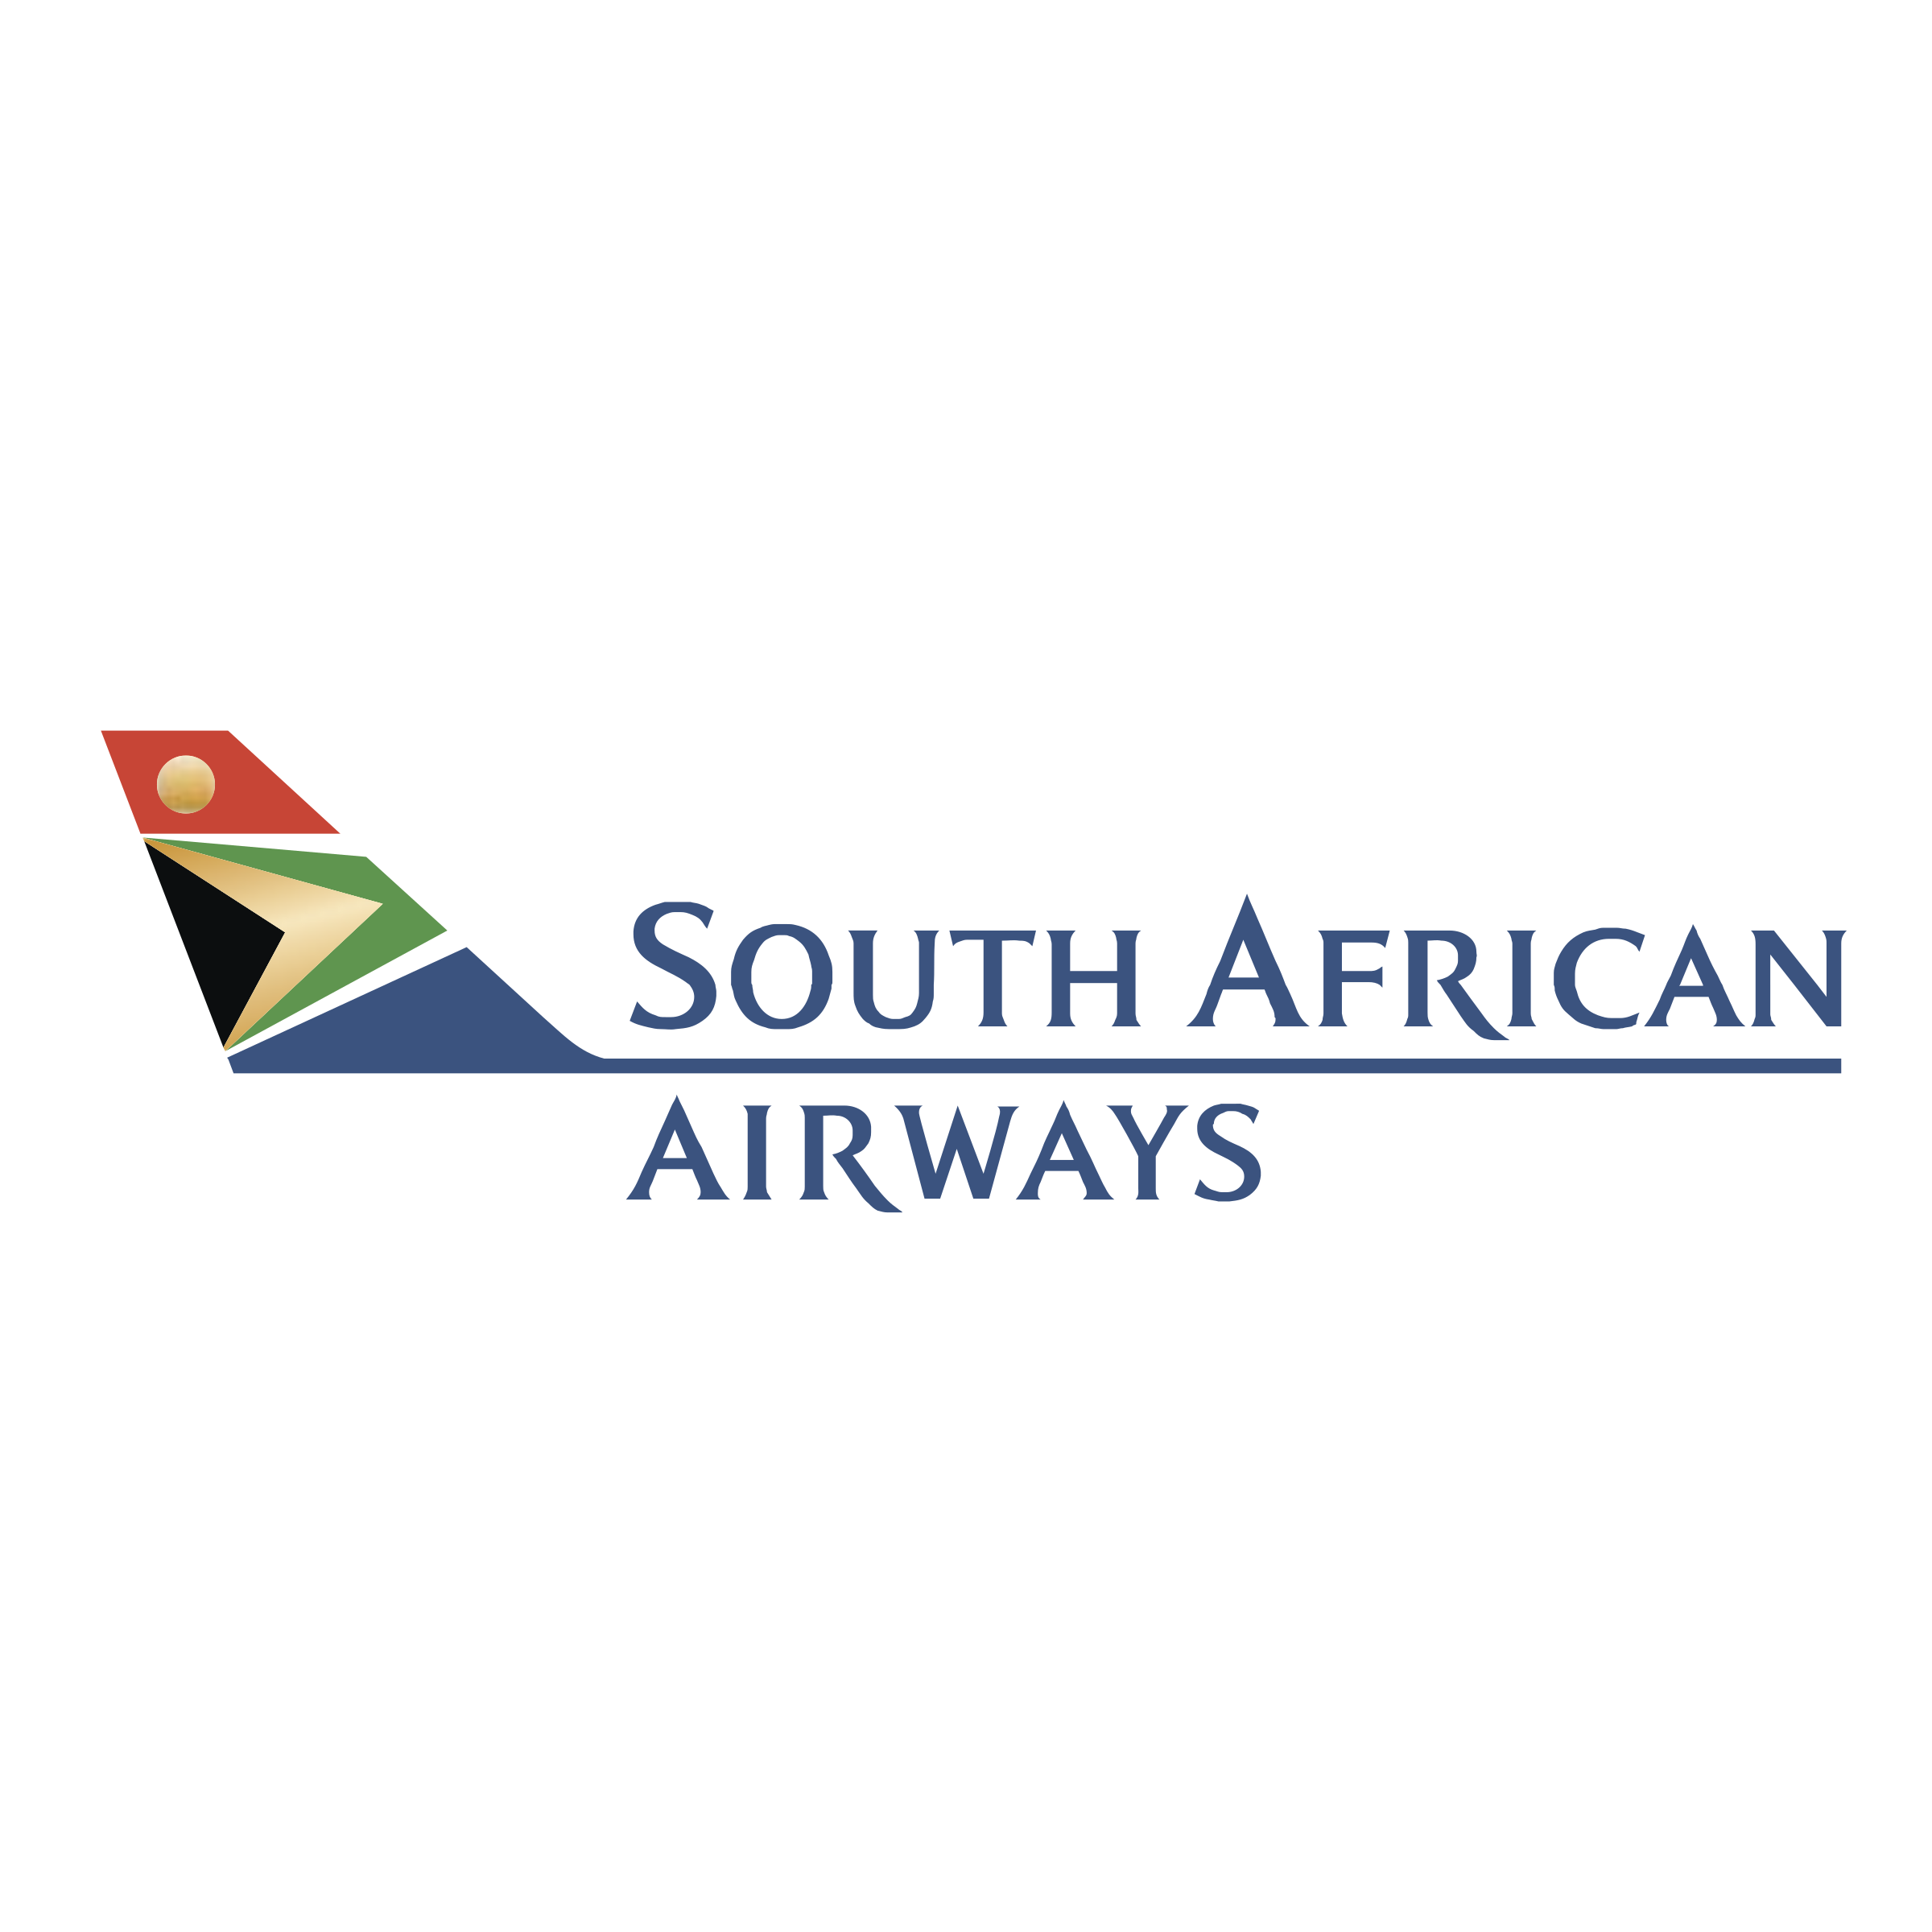 south-african-airways-1-logo-png-transparent